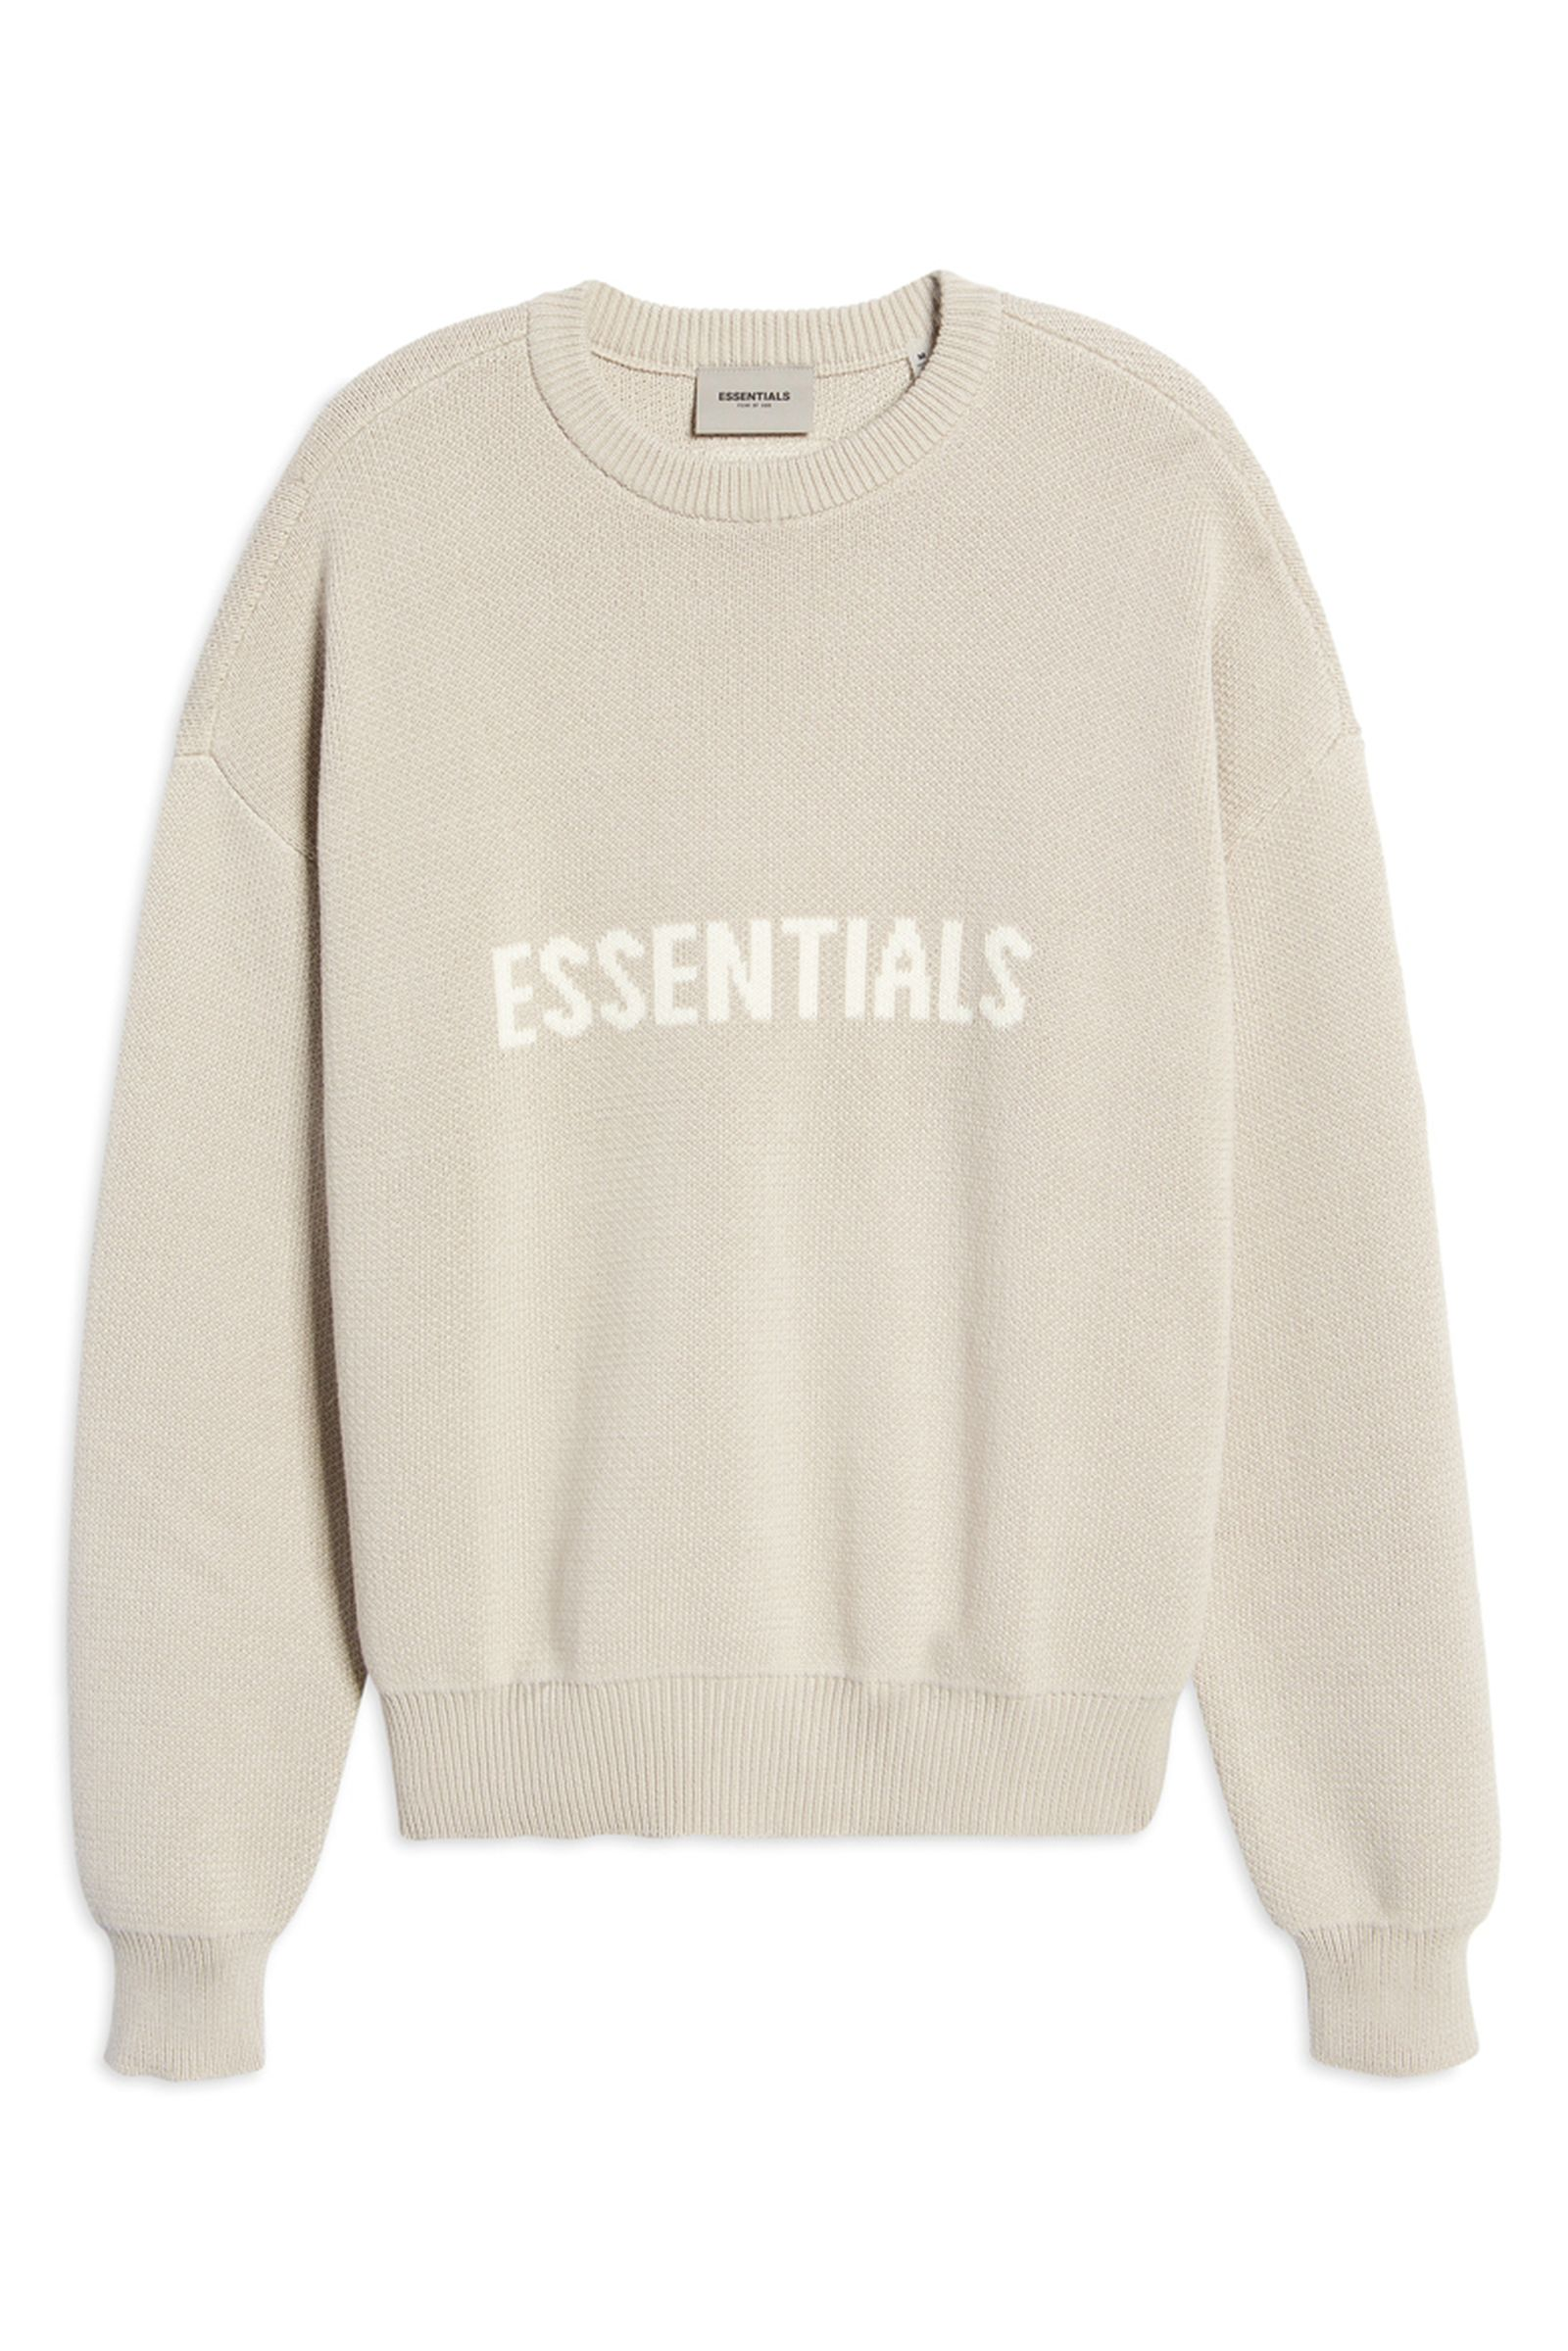 fear of god essentials nordstrom exclusive (5)